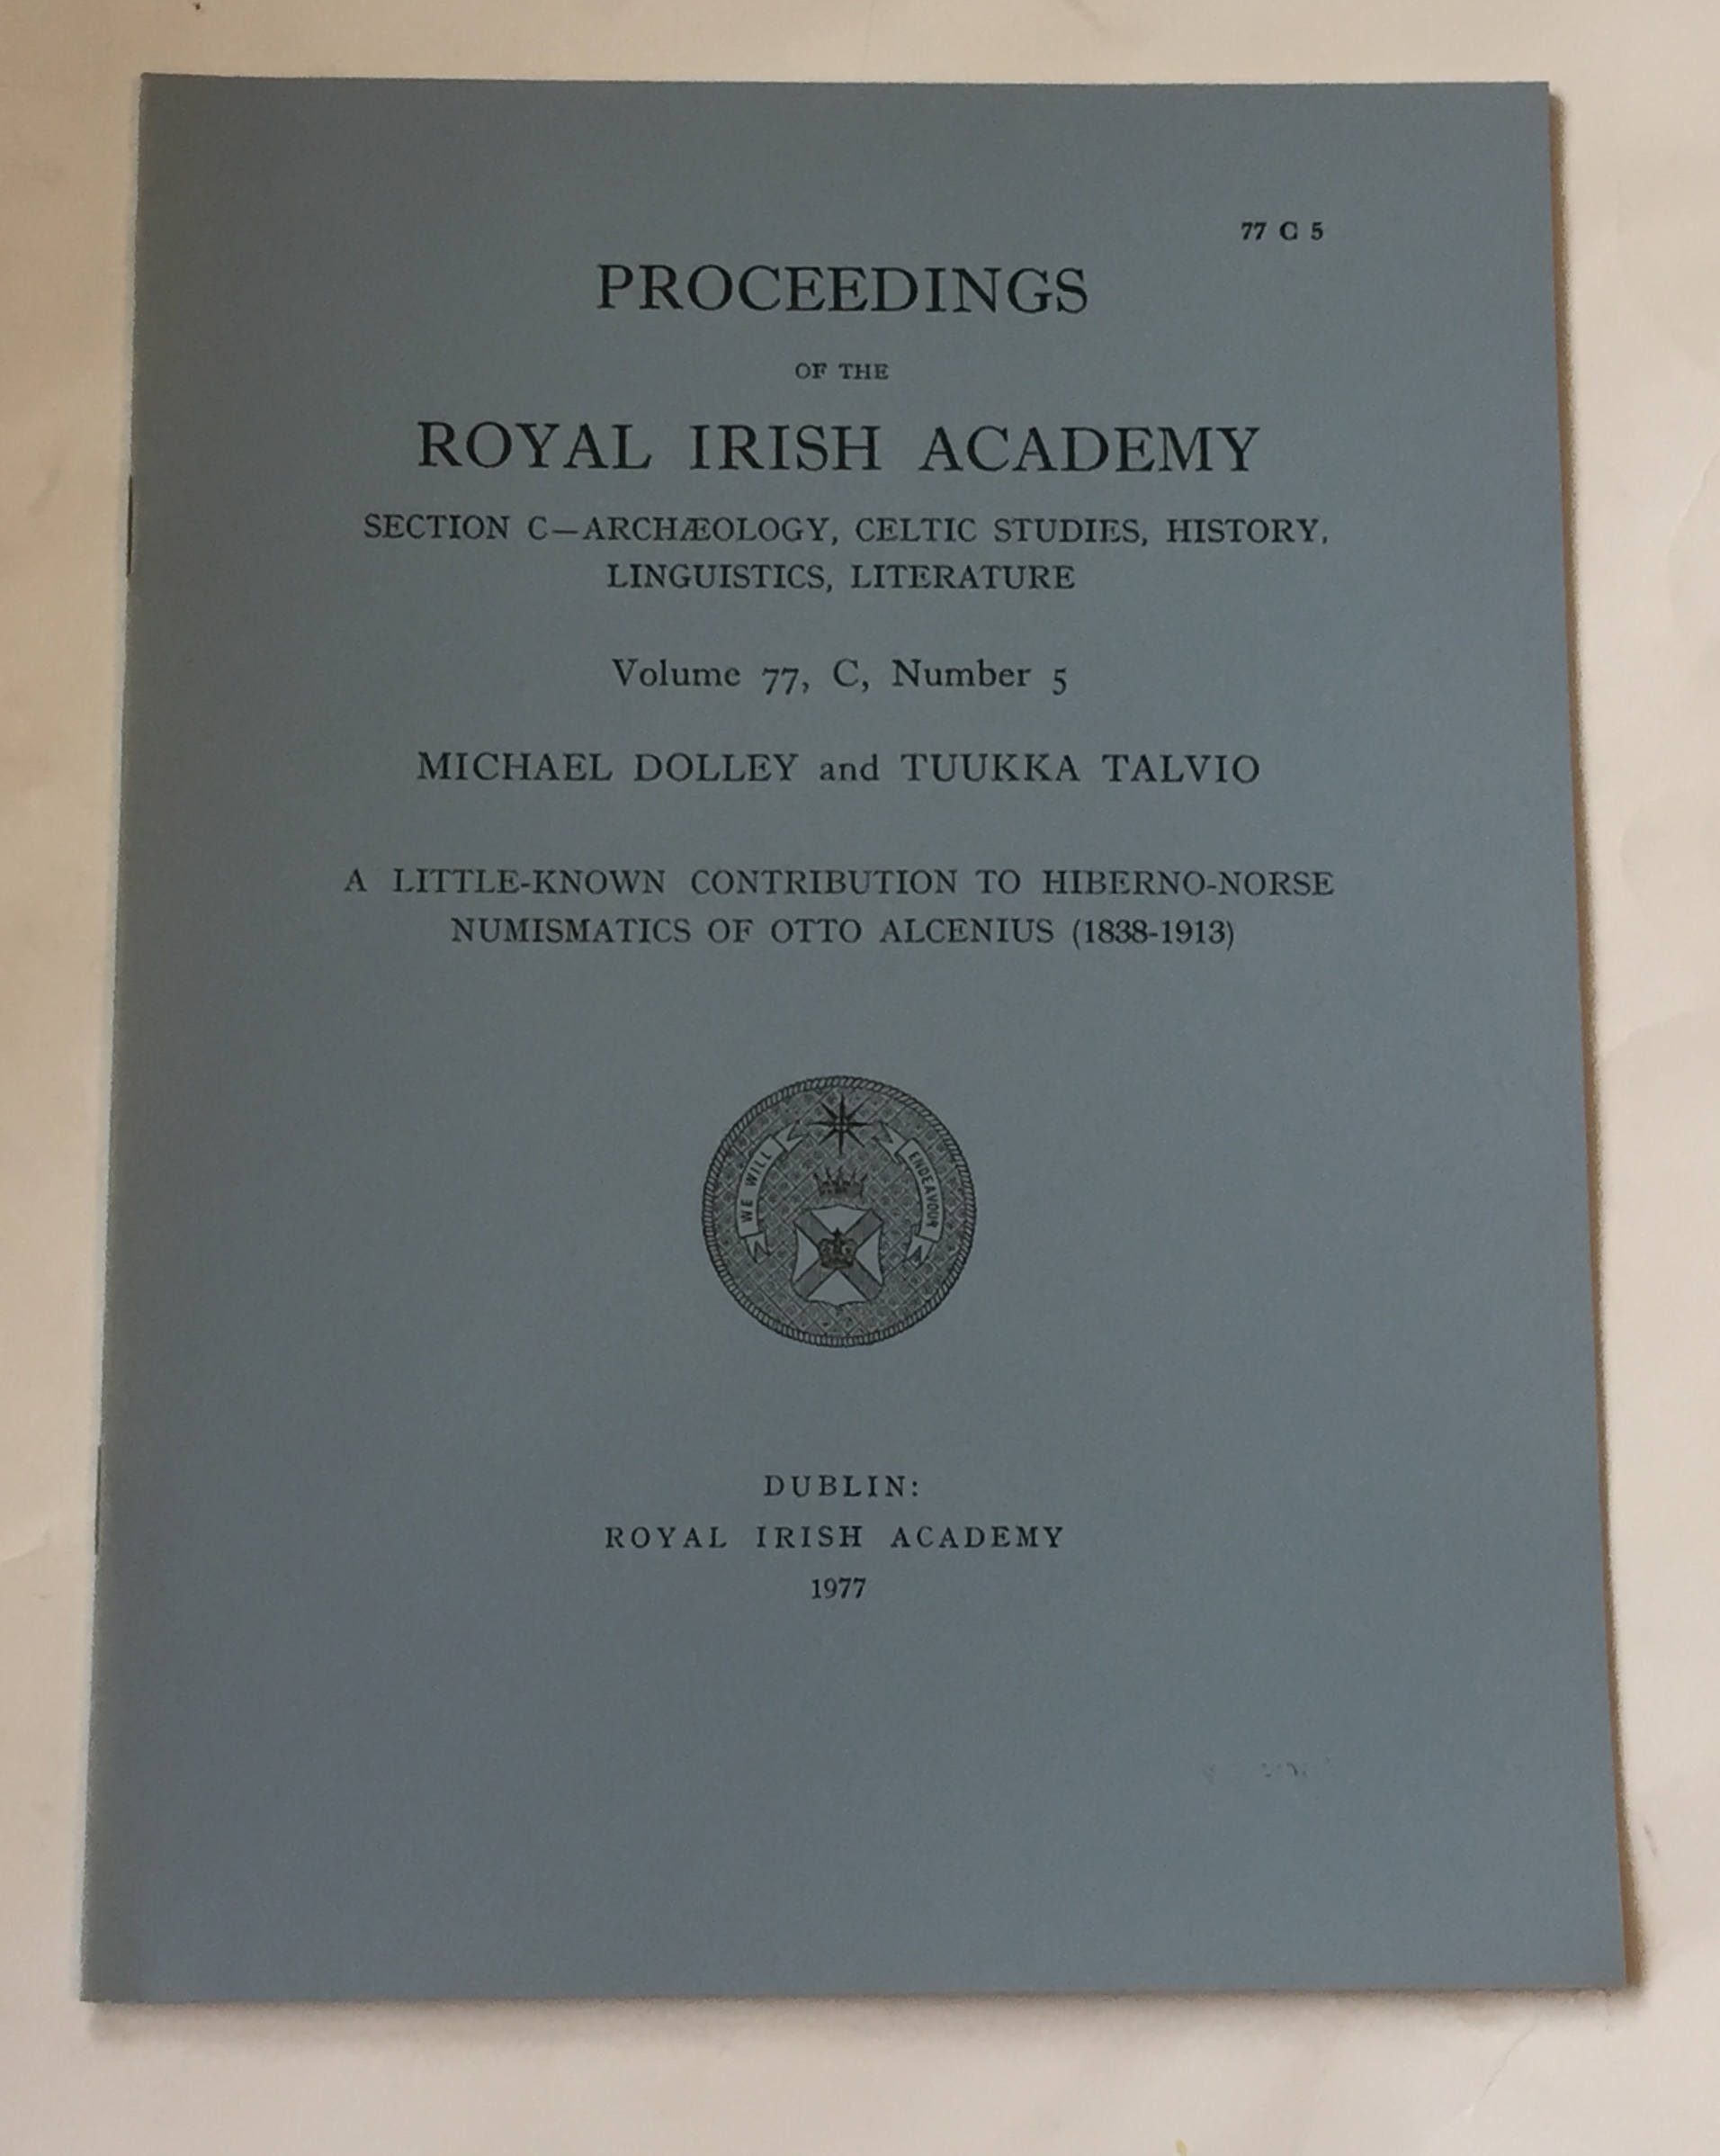 Image for A little-known contribution to hiberno-norse numismatics of otto alcenius (1838-1913) :Proceedings of the Royal Irish Academy, Volume 77, Section C, No. 5